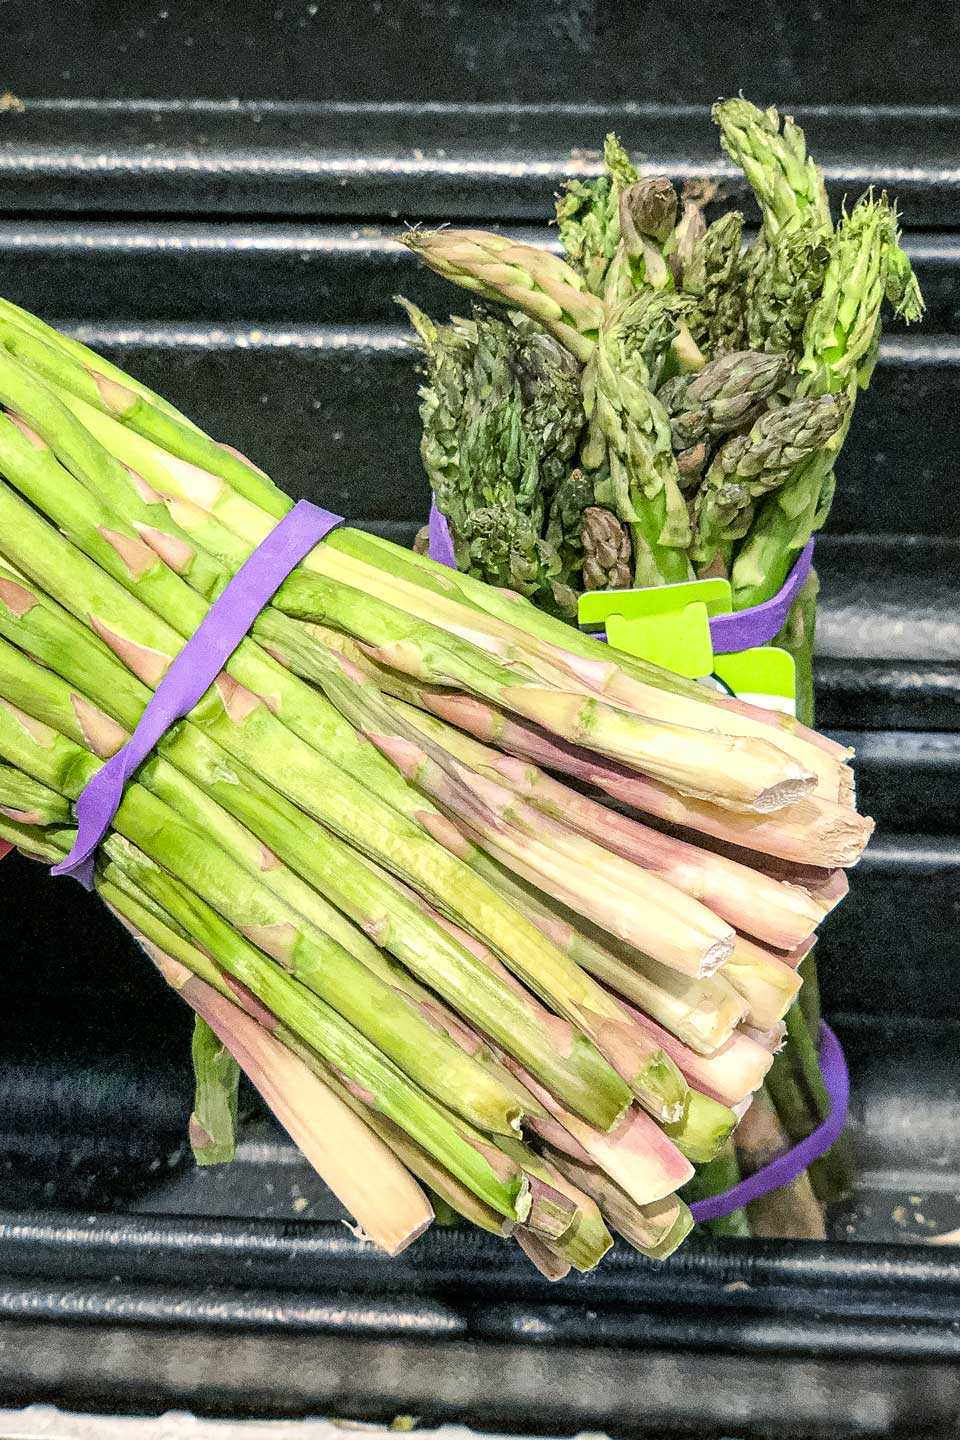 Closeup of the bottom of a bunch of asparagus at the store, showing how the bottoms are wrinkled and dried out.